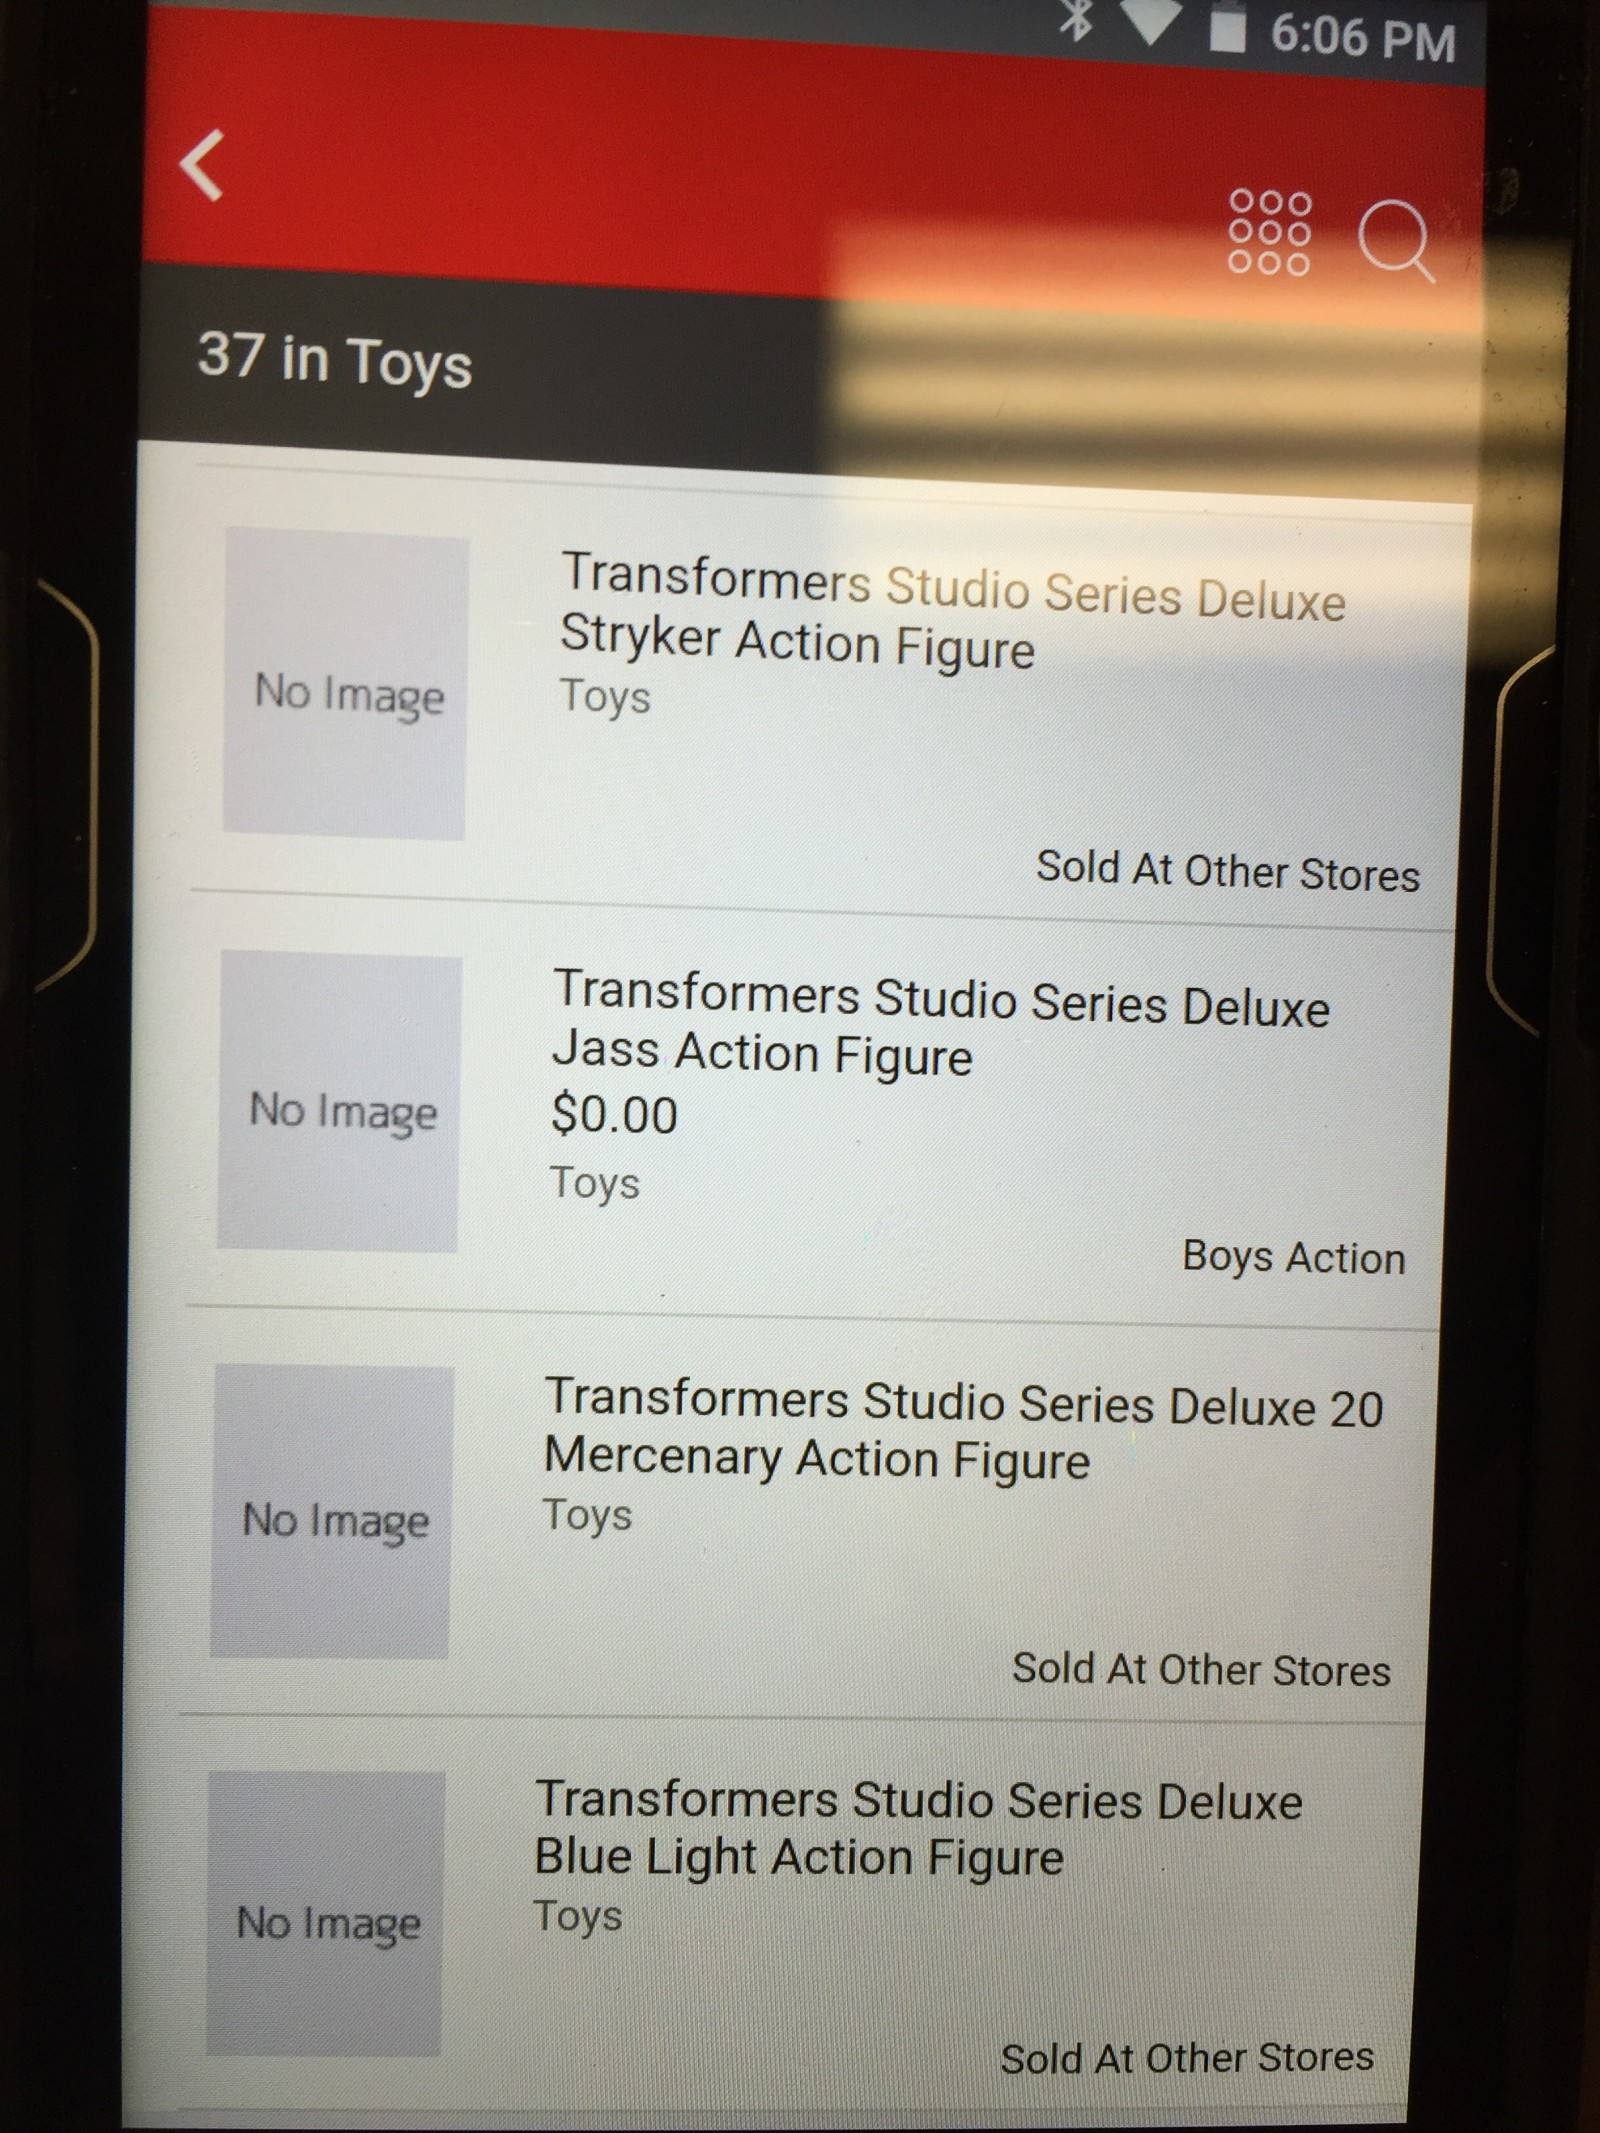 Transformers News: New Listings at Target for Transformers Studio Series